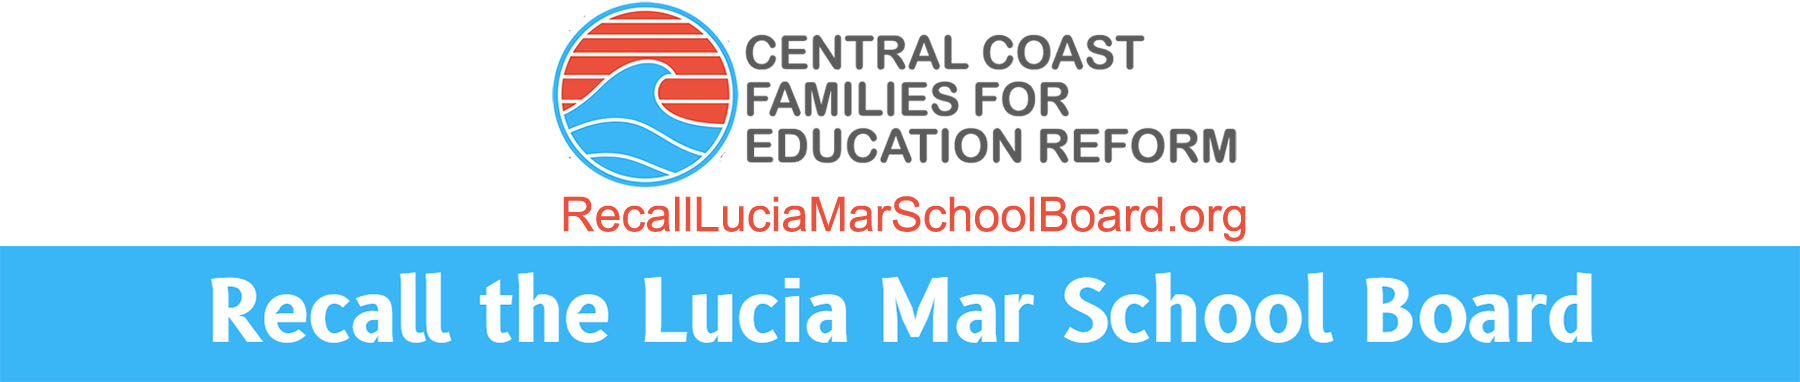 Central Coast FER - Committee to Recall LMUSD Board of  Trustee Members, Stewart, Santos and Martin